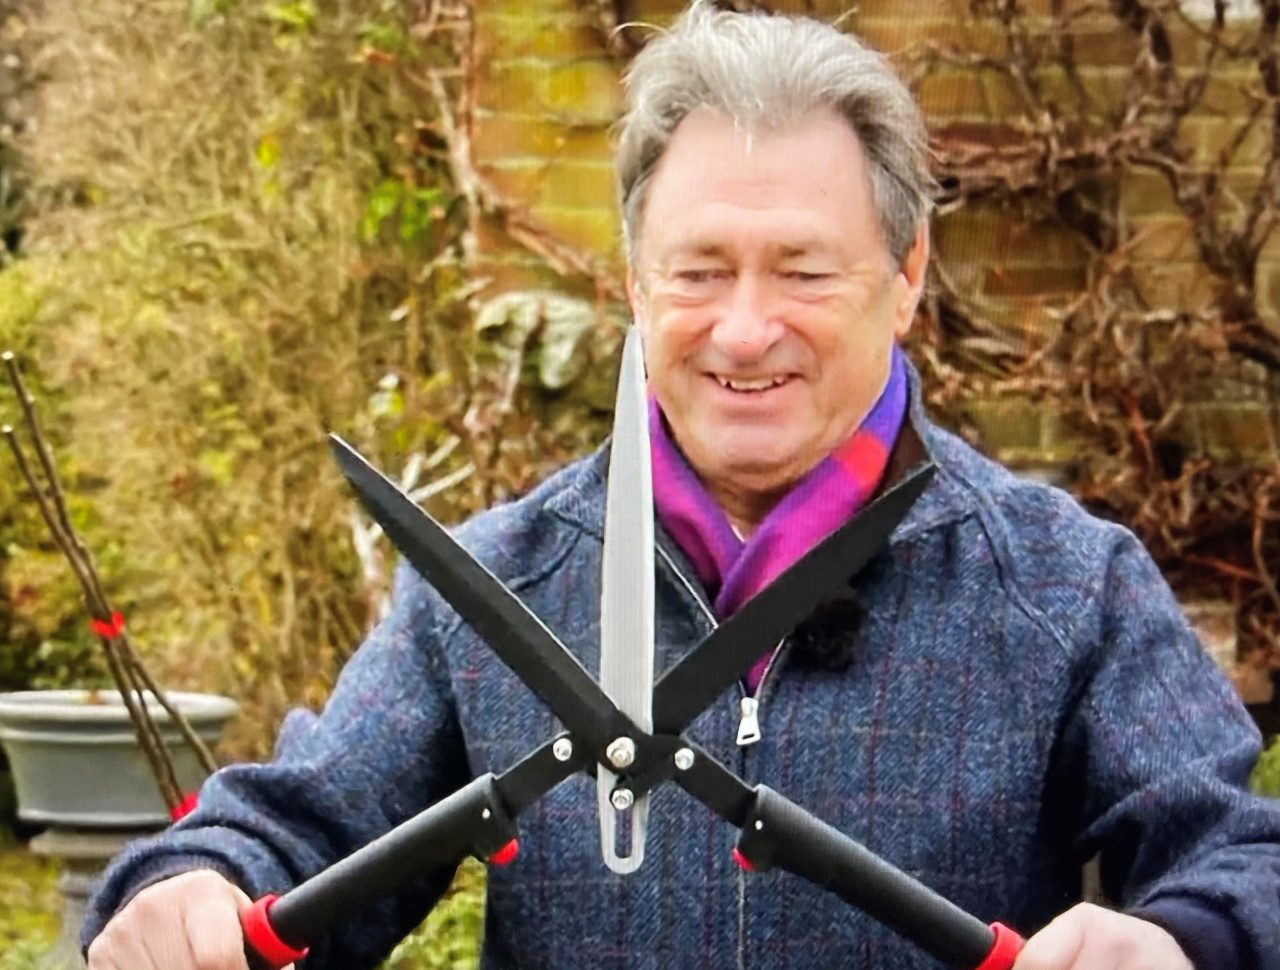 Alan Titchmarsh holding a pair of Darlac TriBlade Garden Shears